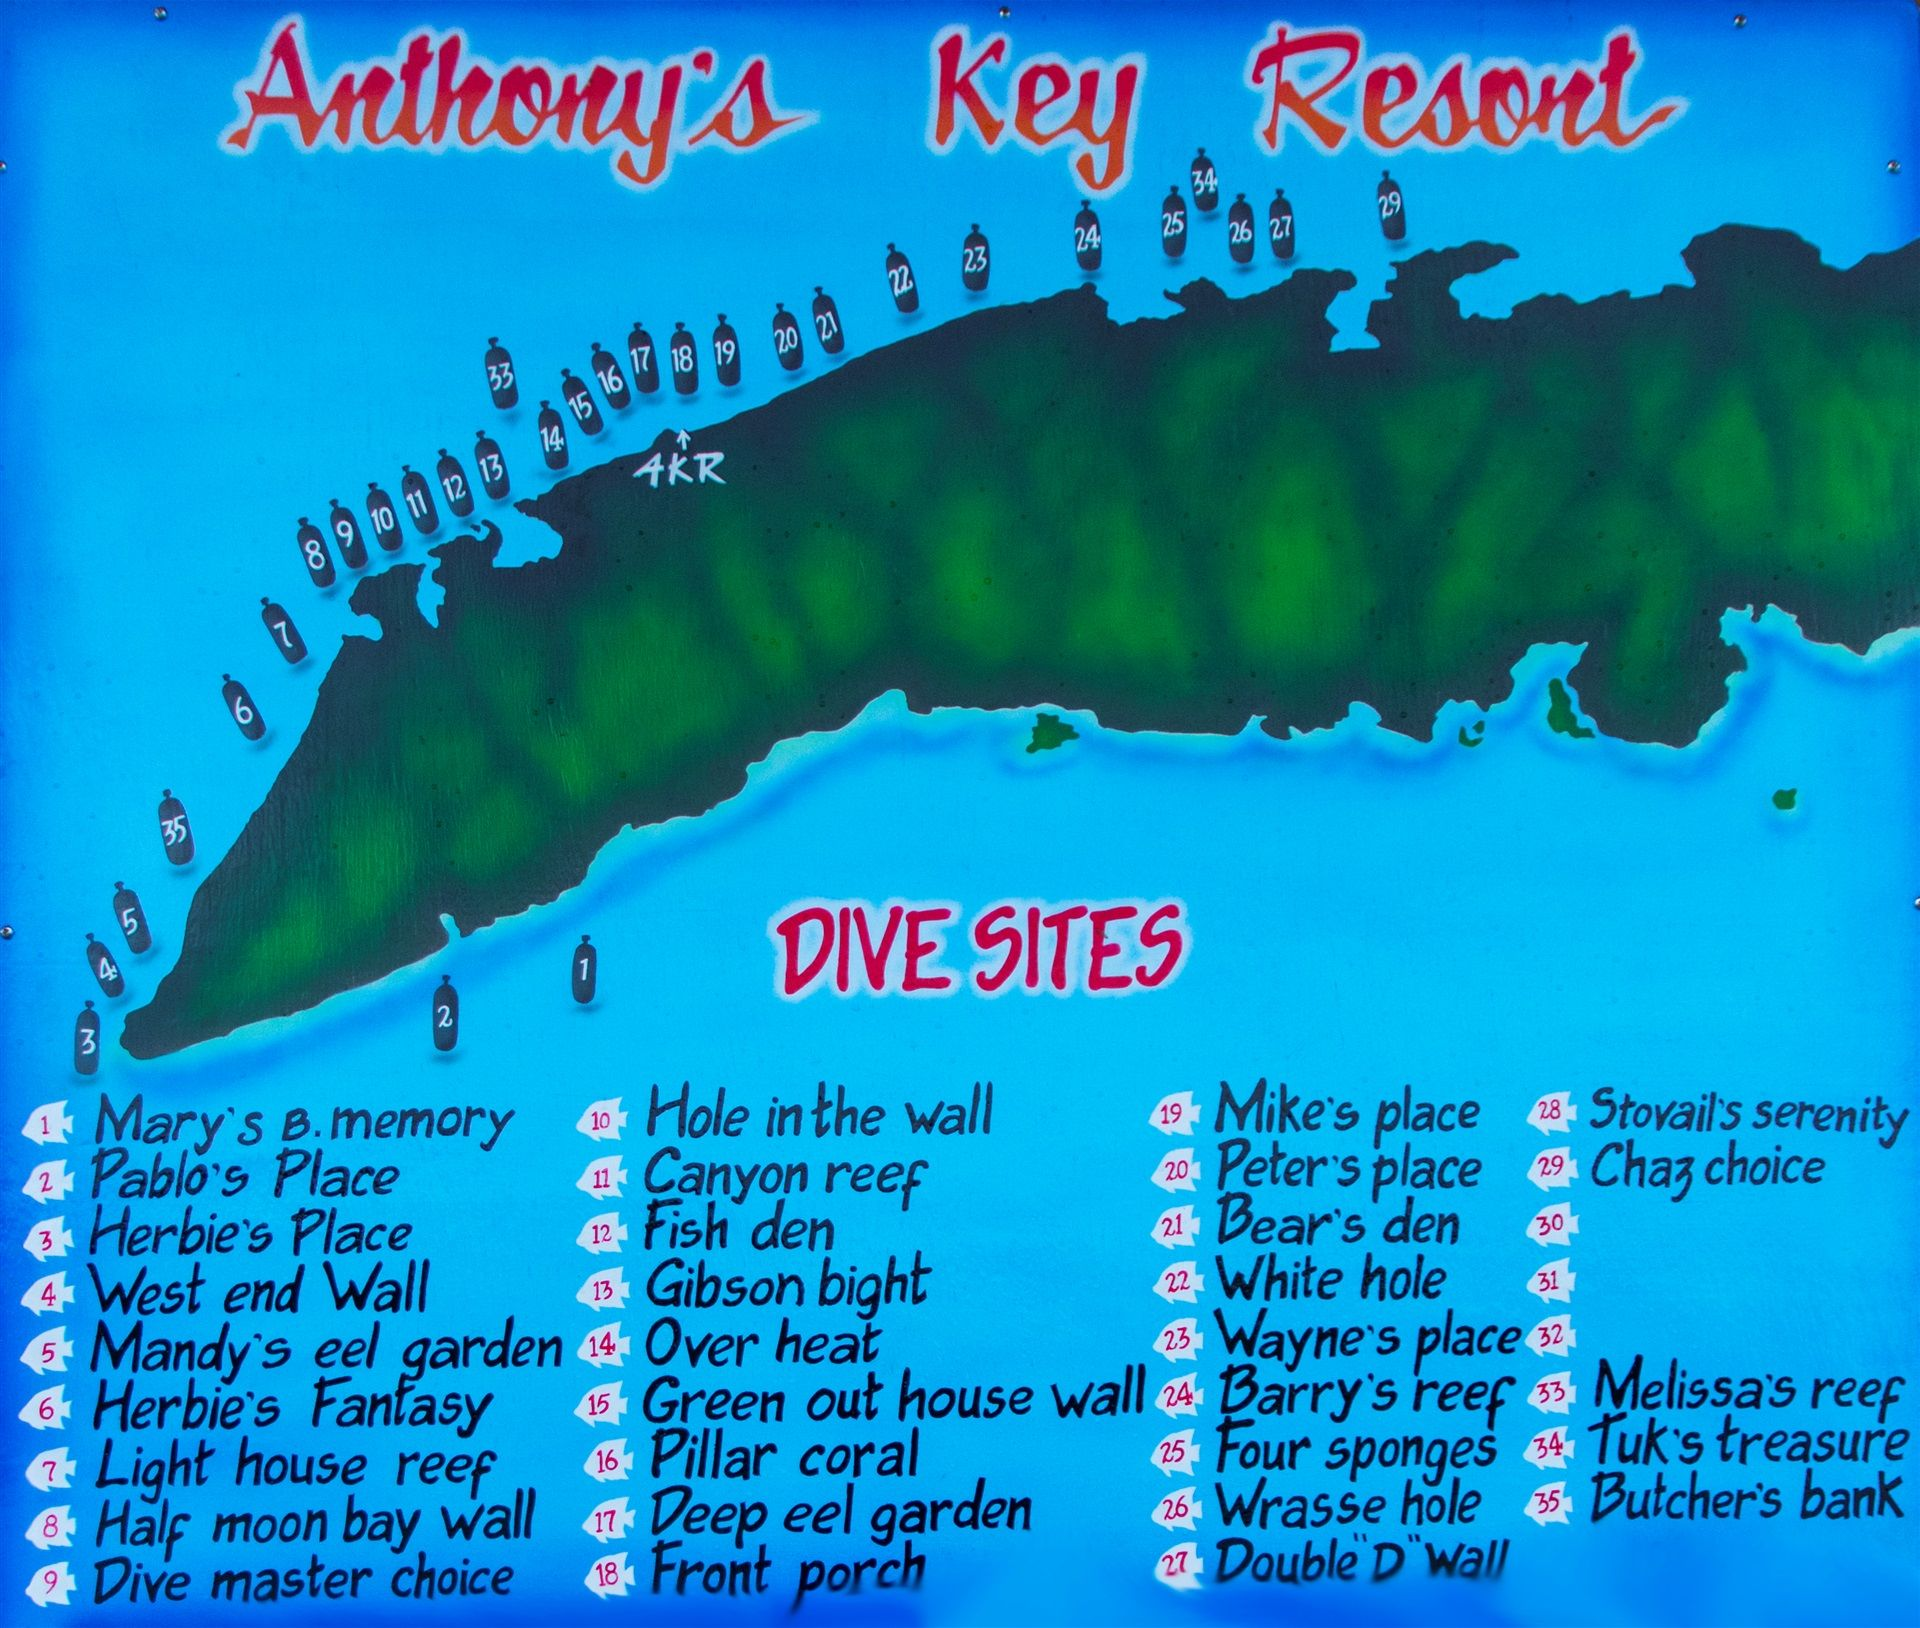 Anthony's Key Resort